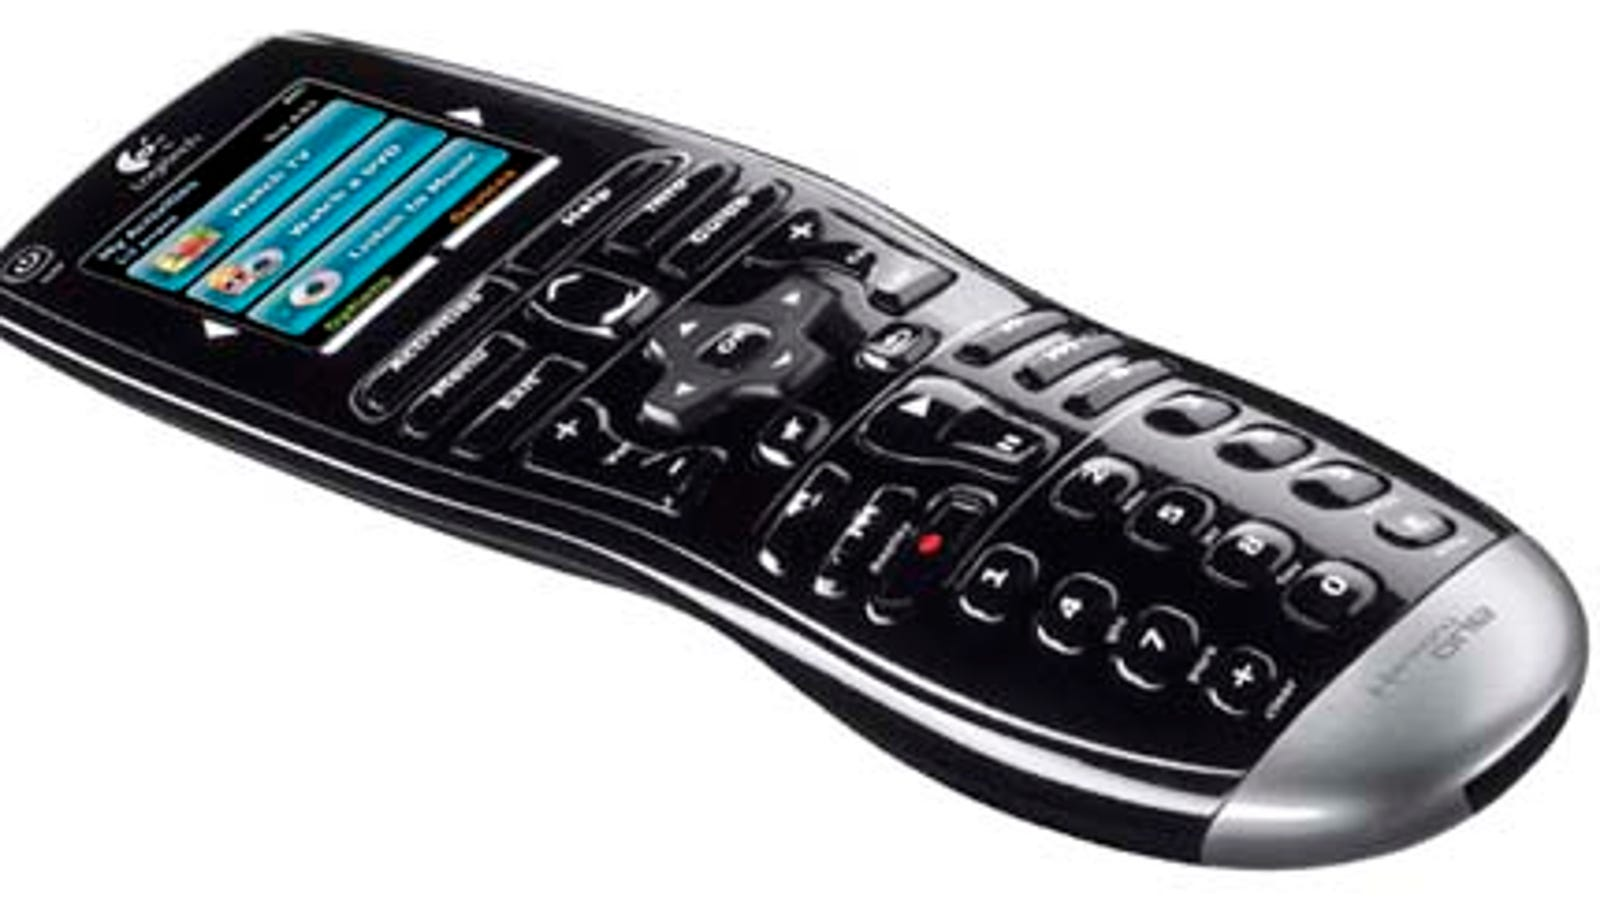 509ea966d2f Logitech Harmony One IR Remote Is Easy-Grip Capacitive-Touch Couch Buddy